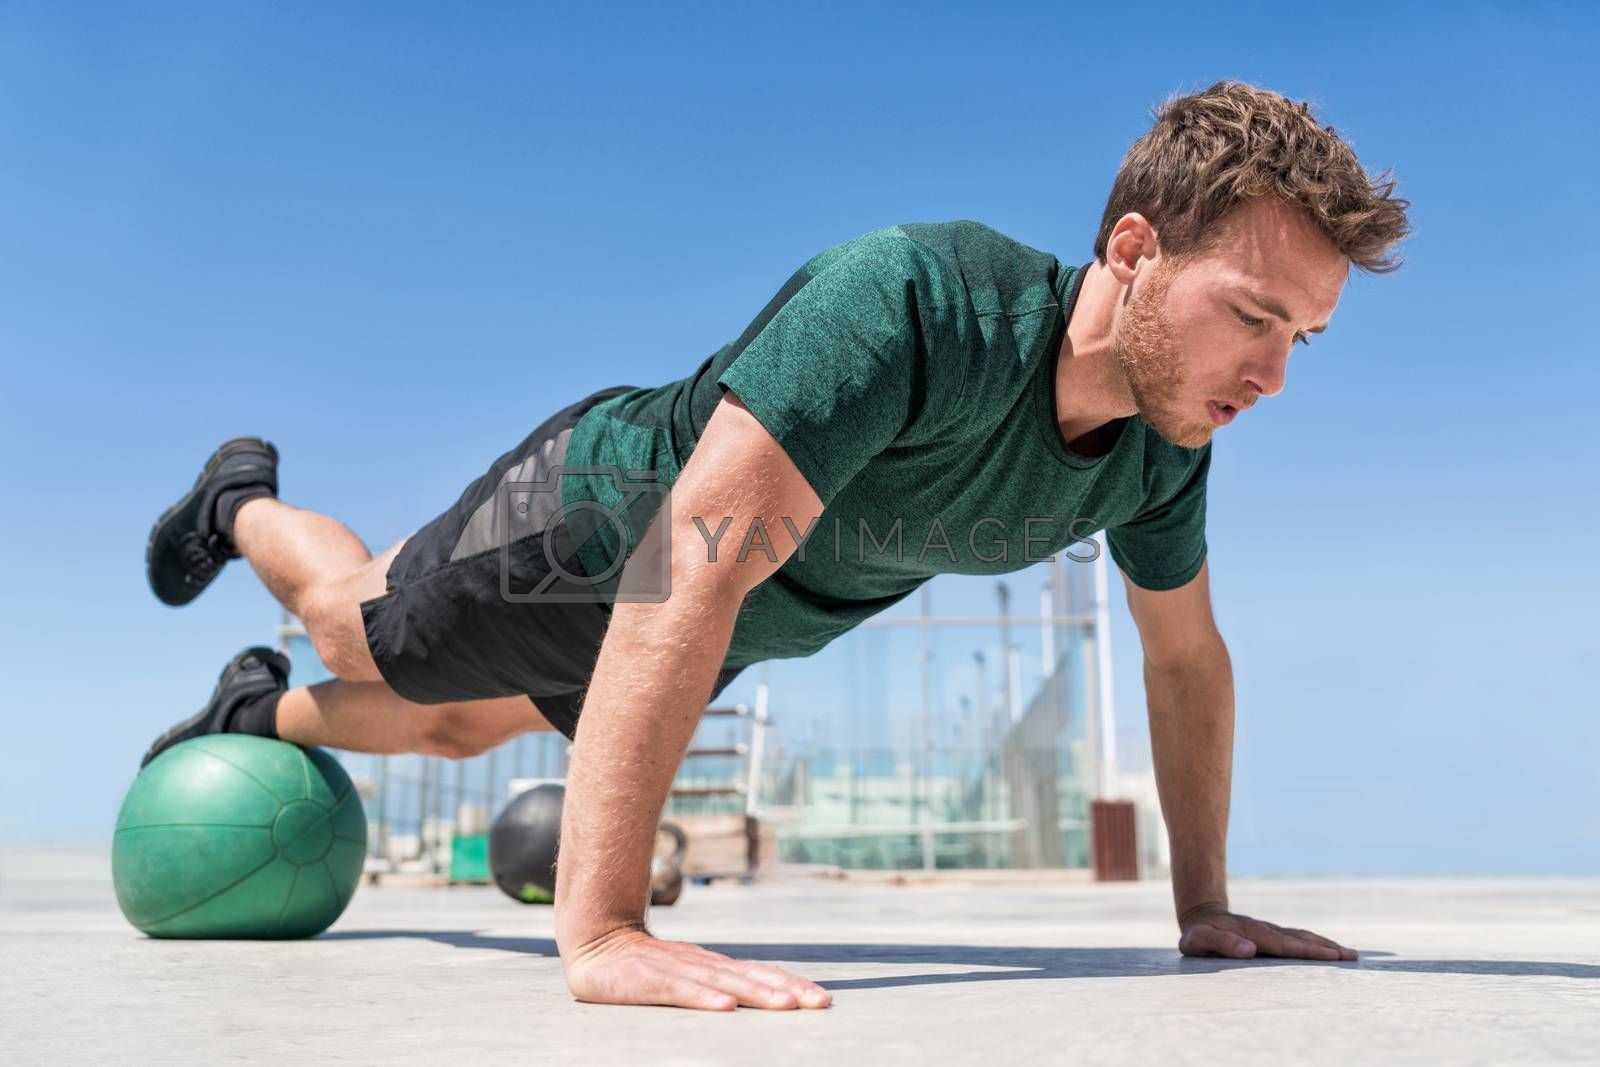 Man doing pushups balancing on medicine ball by Maridav